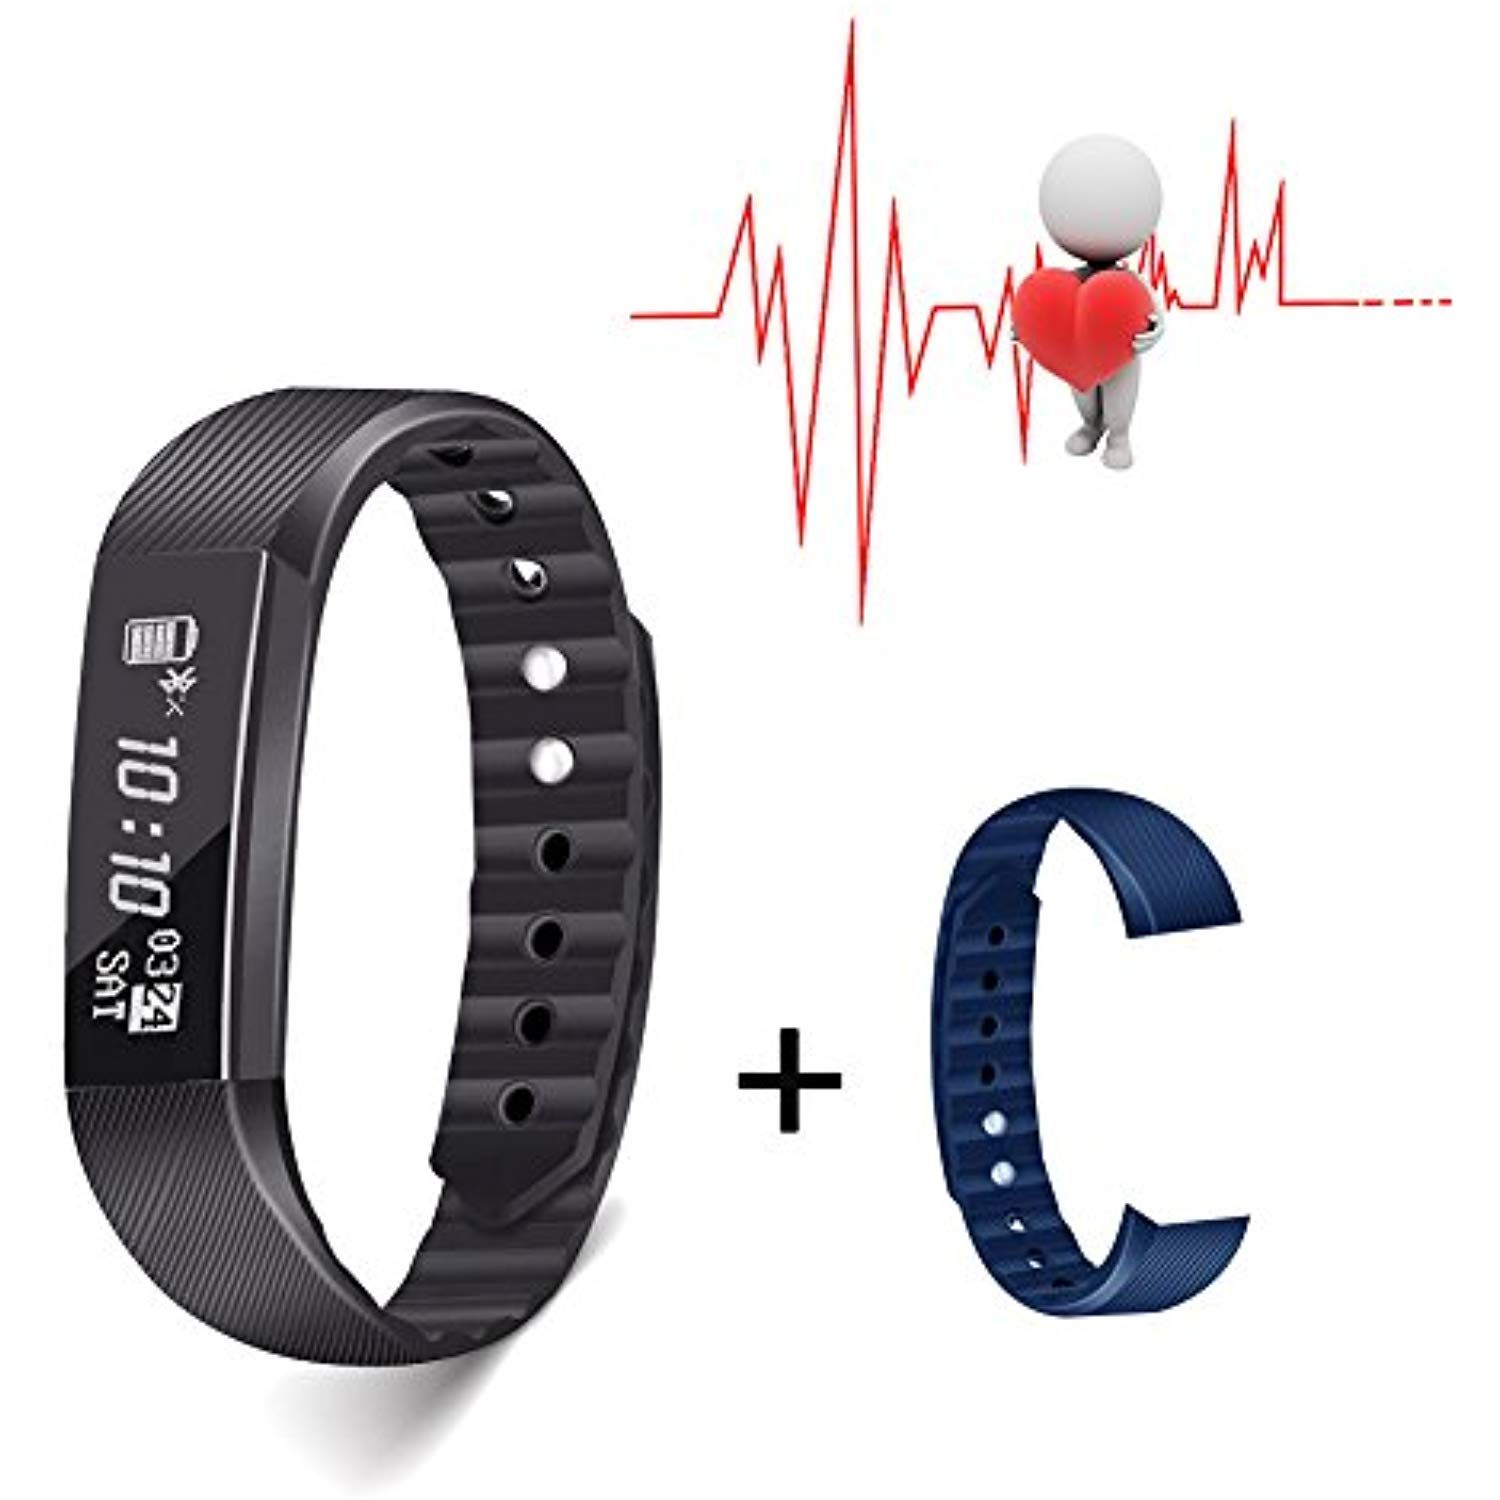 Slicemall Fitness Tracker with Heart Rate Monitor Watch